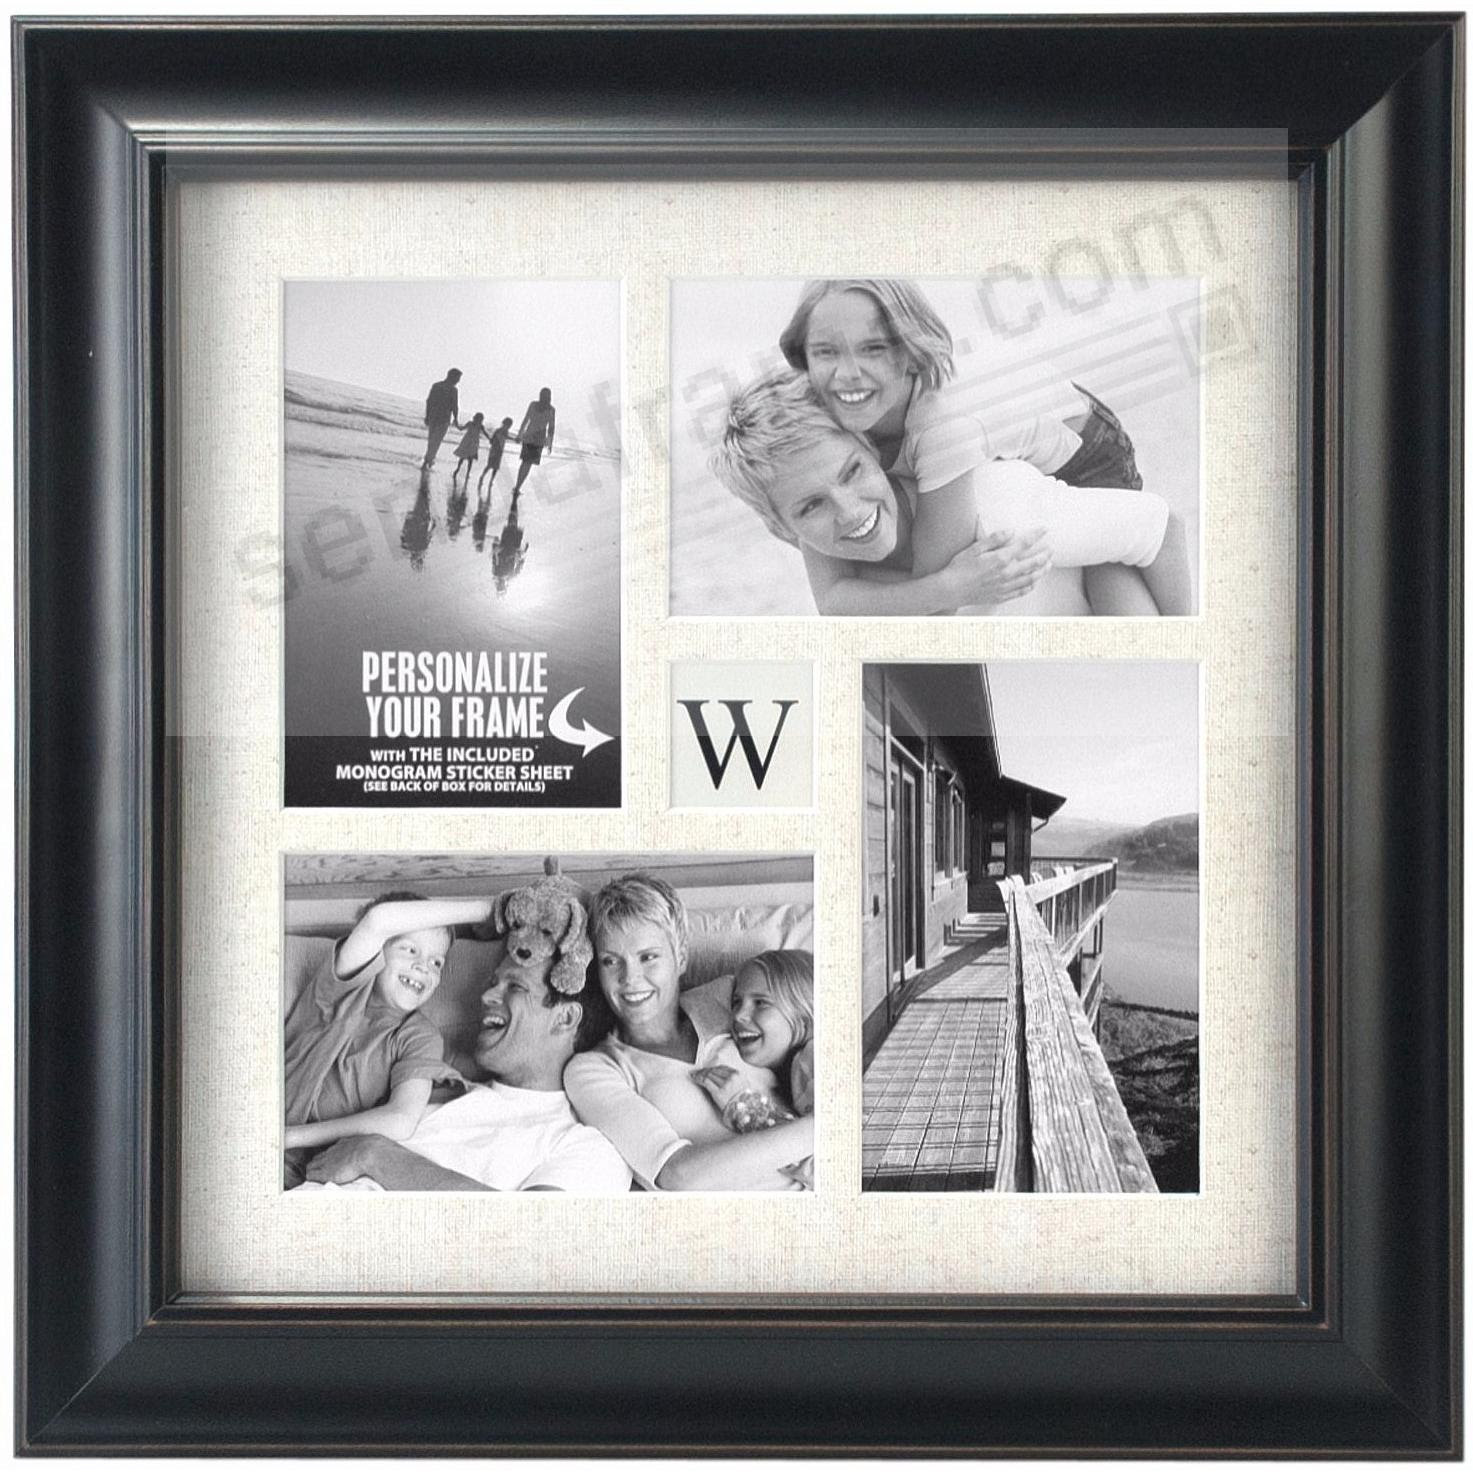 Barnside Black Initial Collage Frame Displays 4 4x6 Photos By